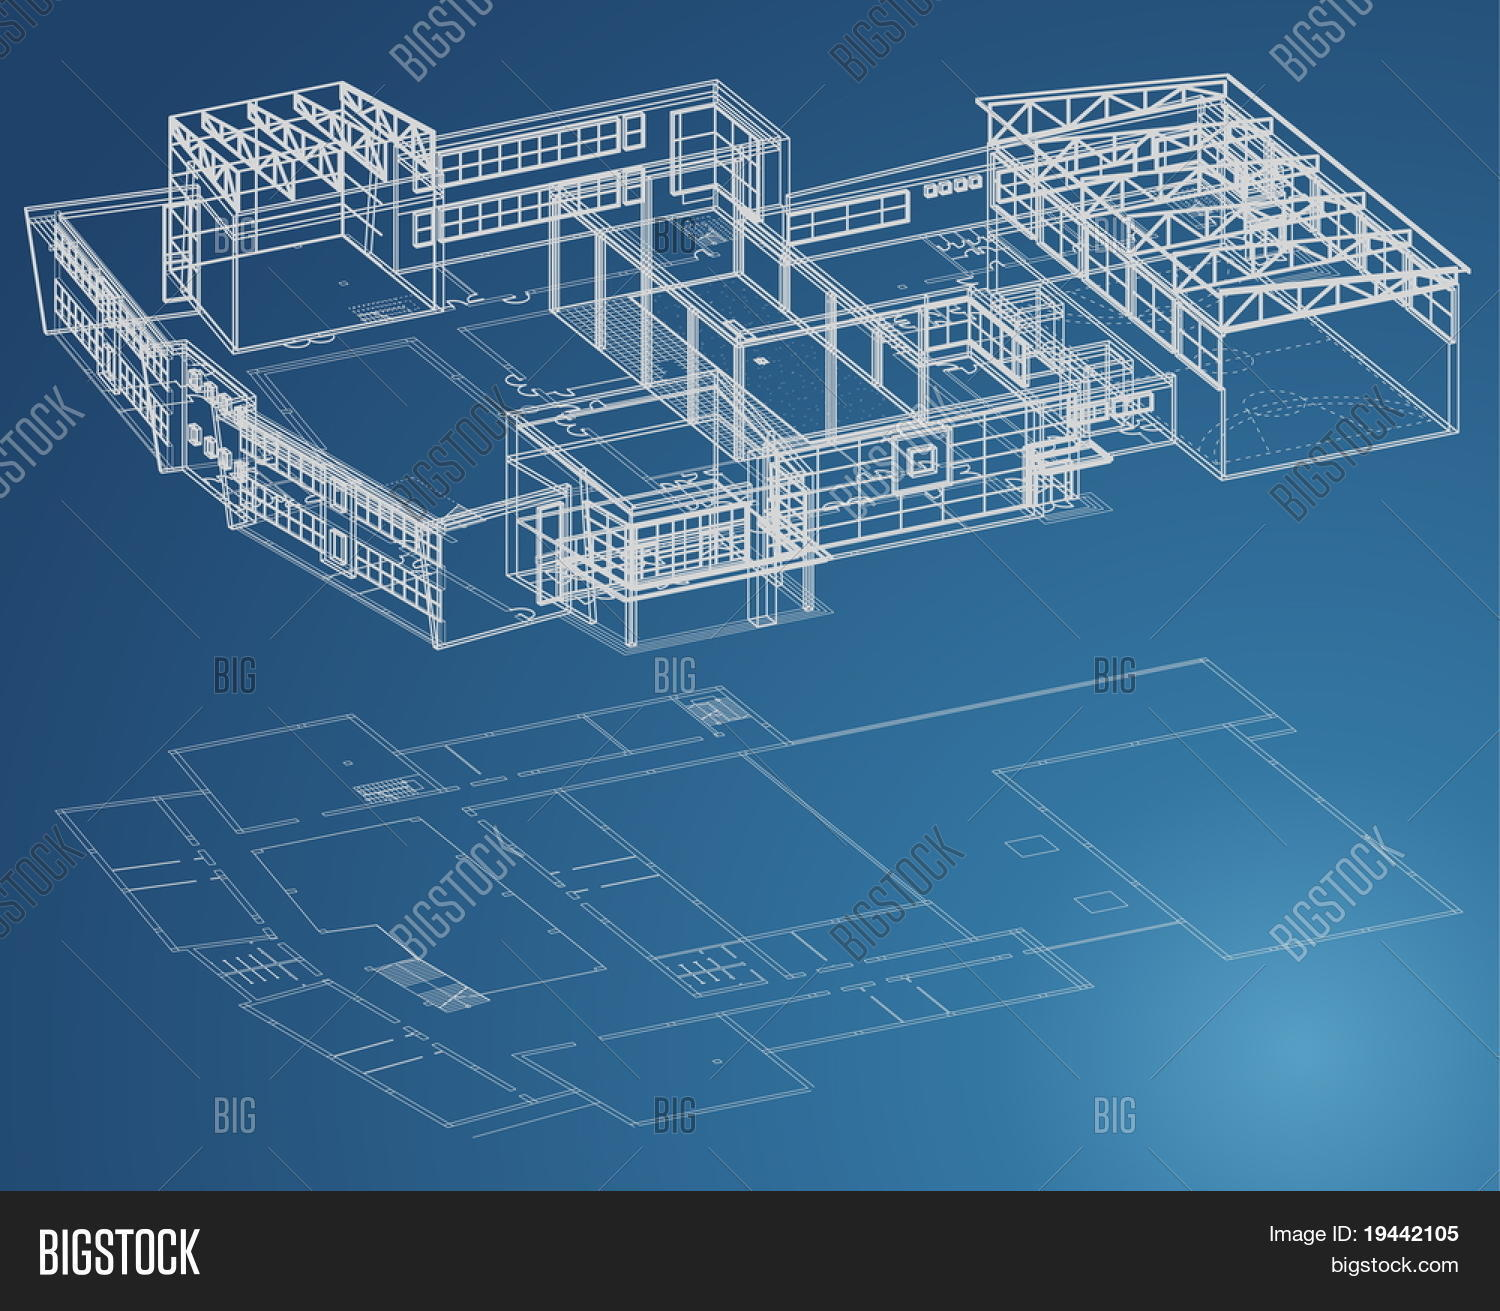 Blueprint plan school vector photo free trial bigstock blueprint plan of school building in third view and basic malvernweather